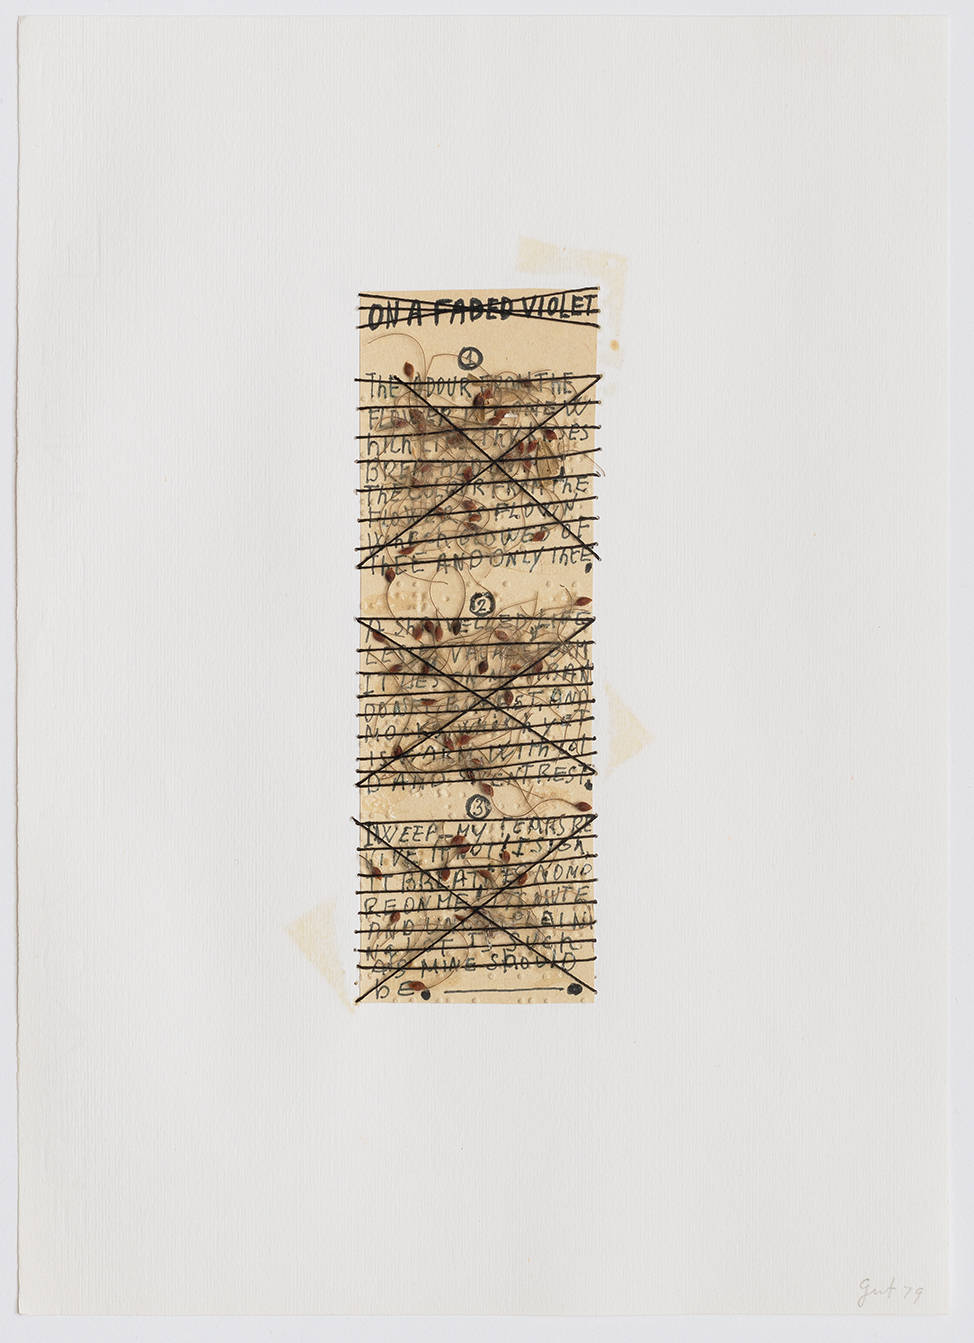 Elisabetta Gut, On a faded violet, 1979. Engrave, ink, collage, natural elements, thread on Fabriano Paper 29,5x21cm